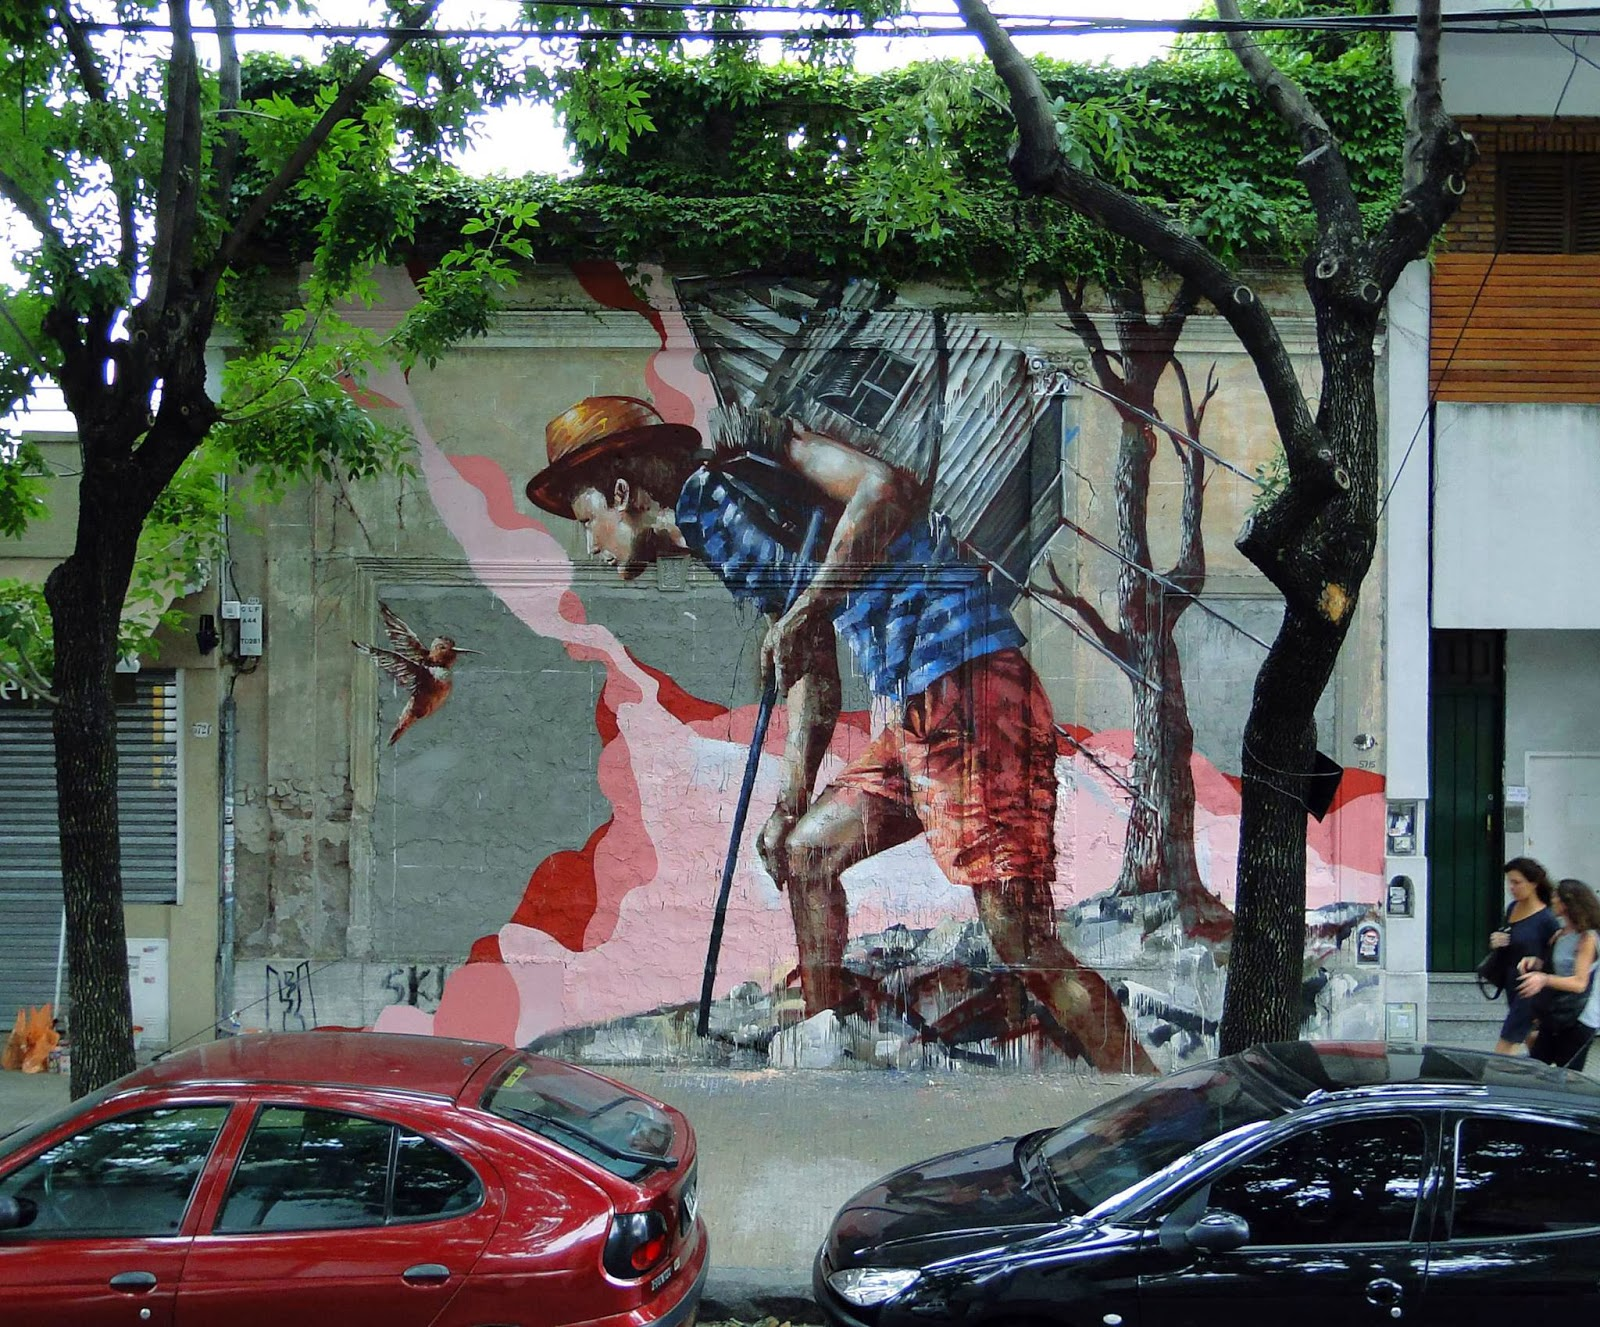 """Homeward Bound"" New Street Art Piece by Fintan Magee in the city of Buenos Aires in Argentina. 1"